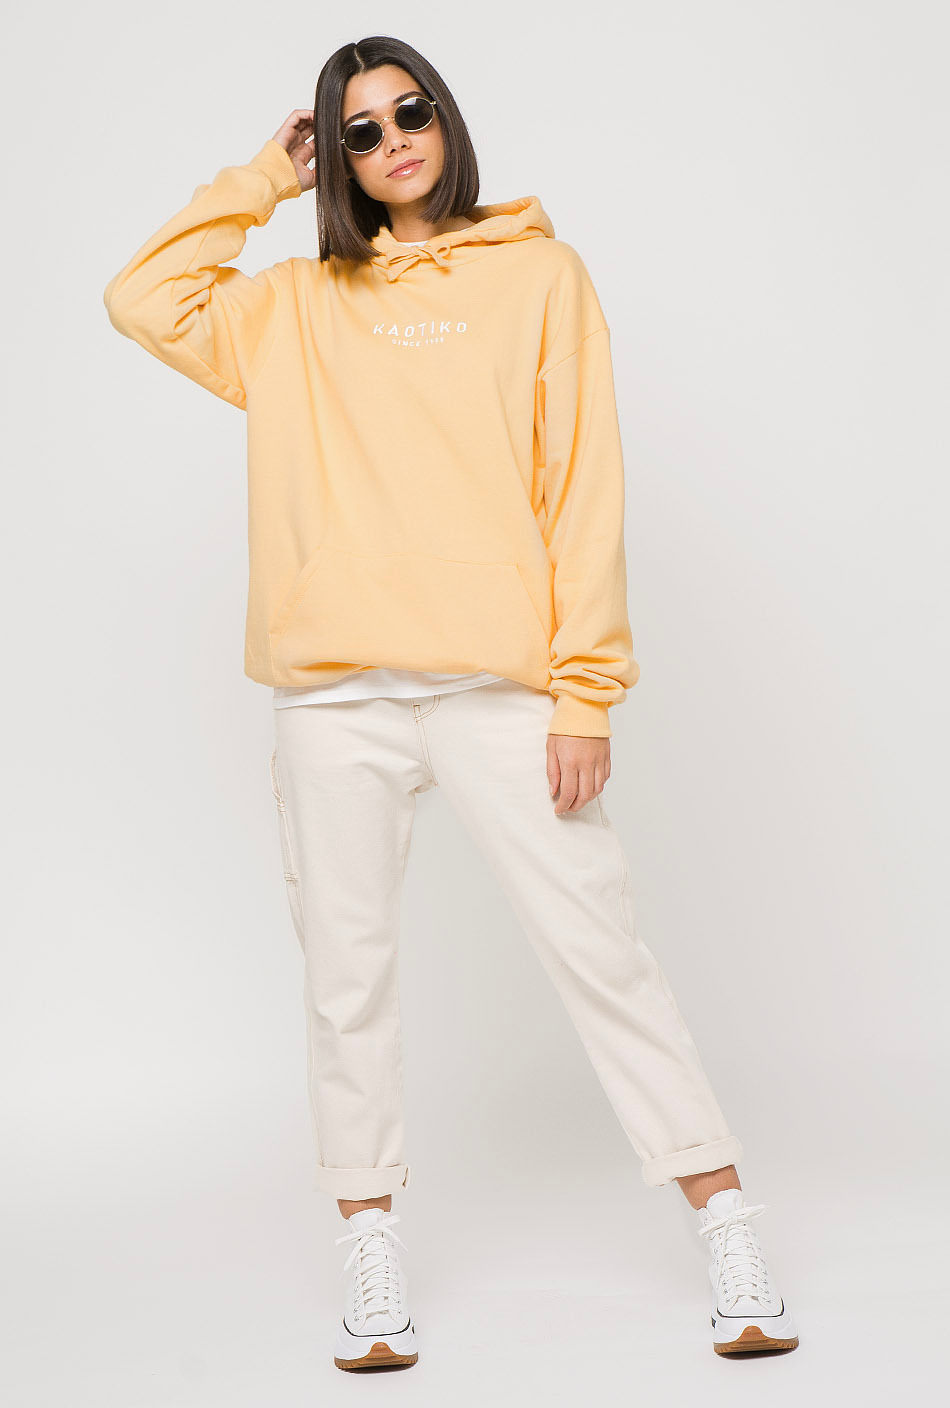 Vancouver Yellow Hoodie